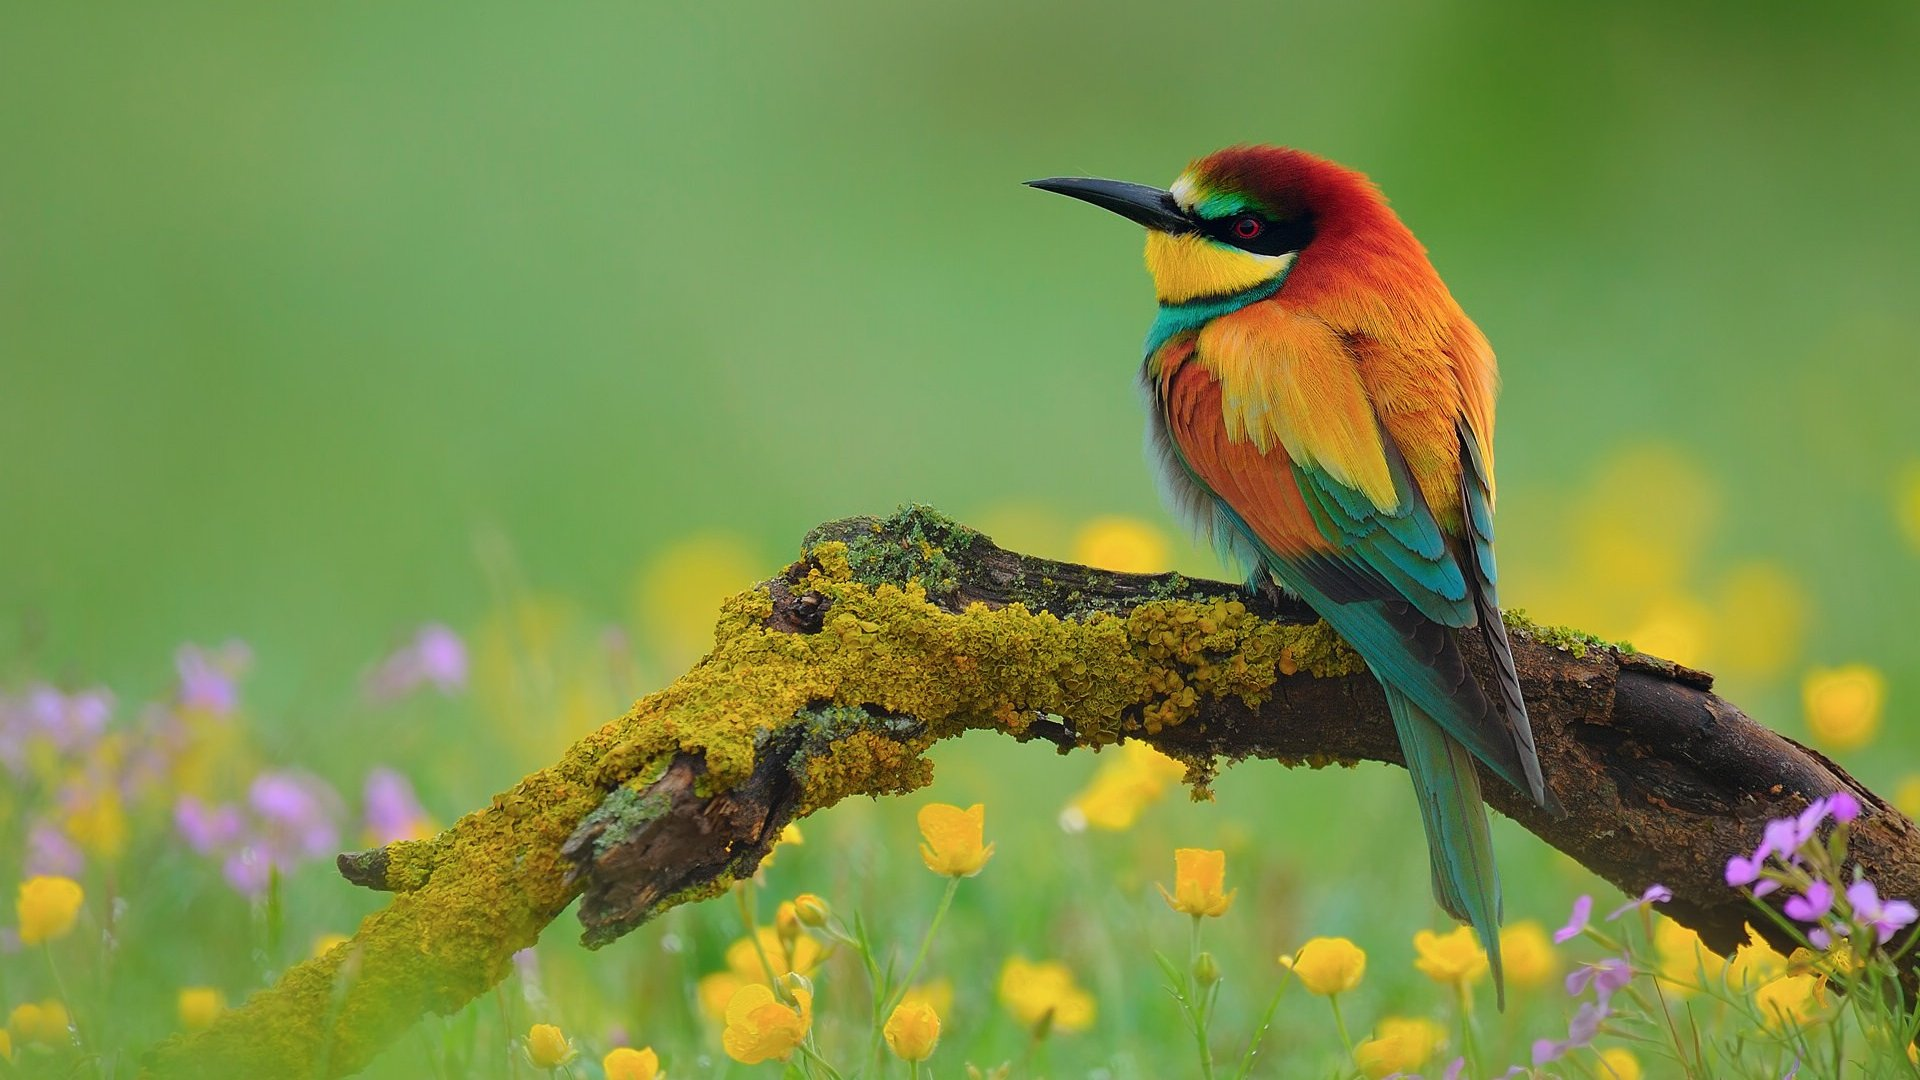 Bird Colorful Birds Wallpaper Backgrounds Images Wallpapers